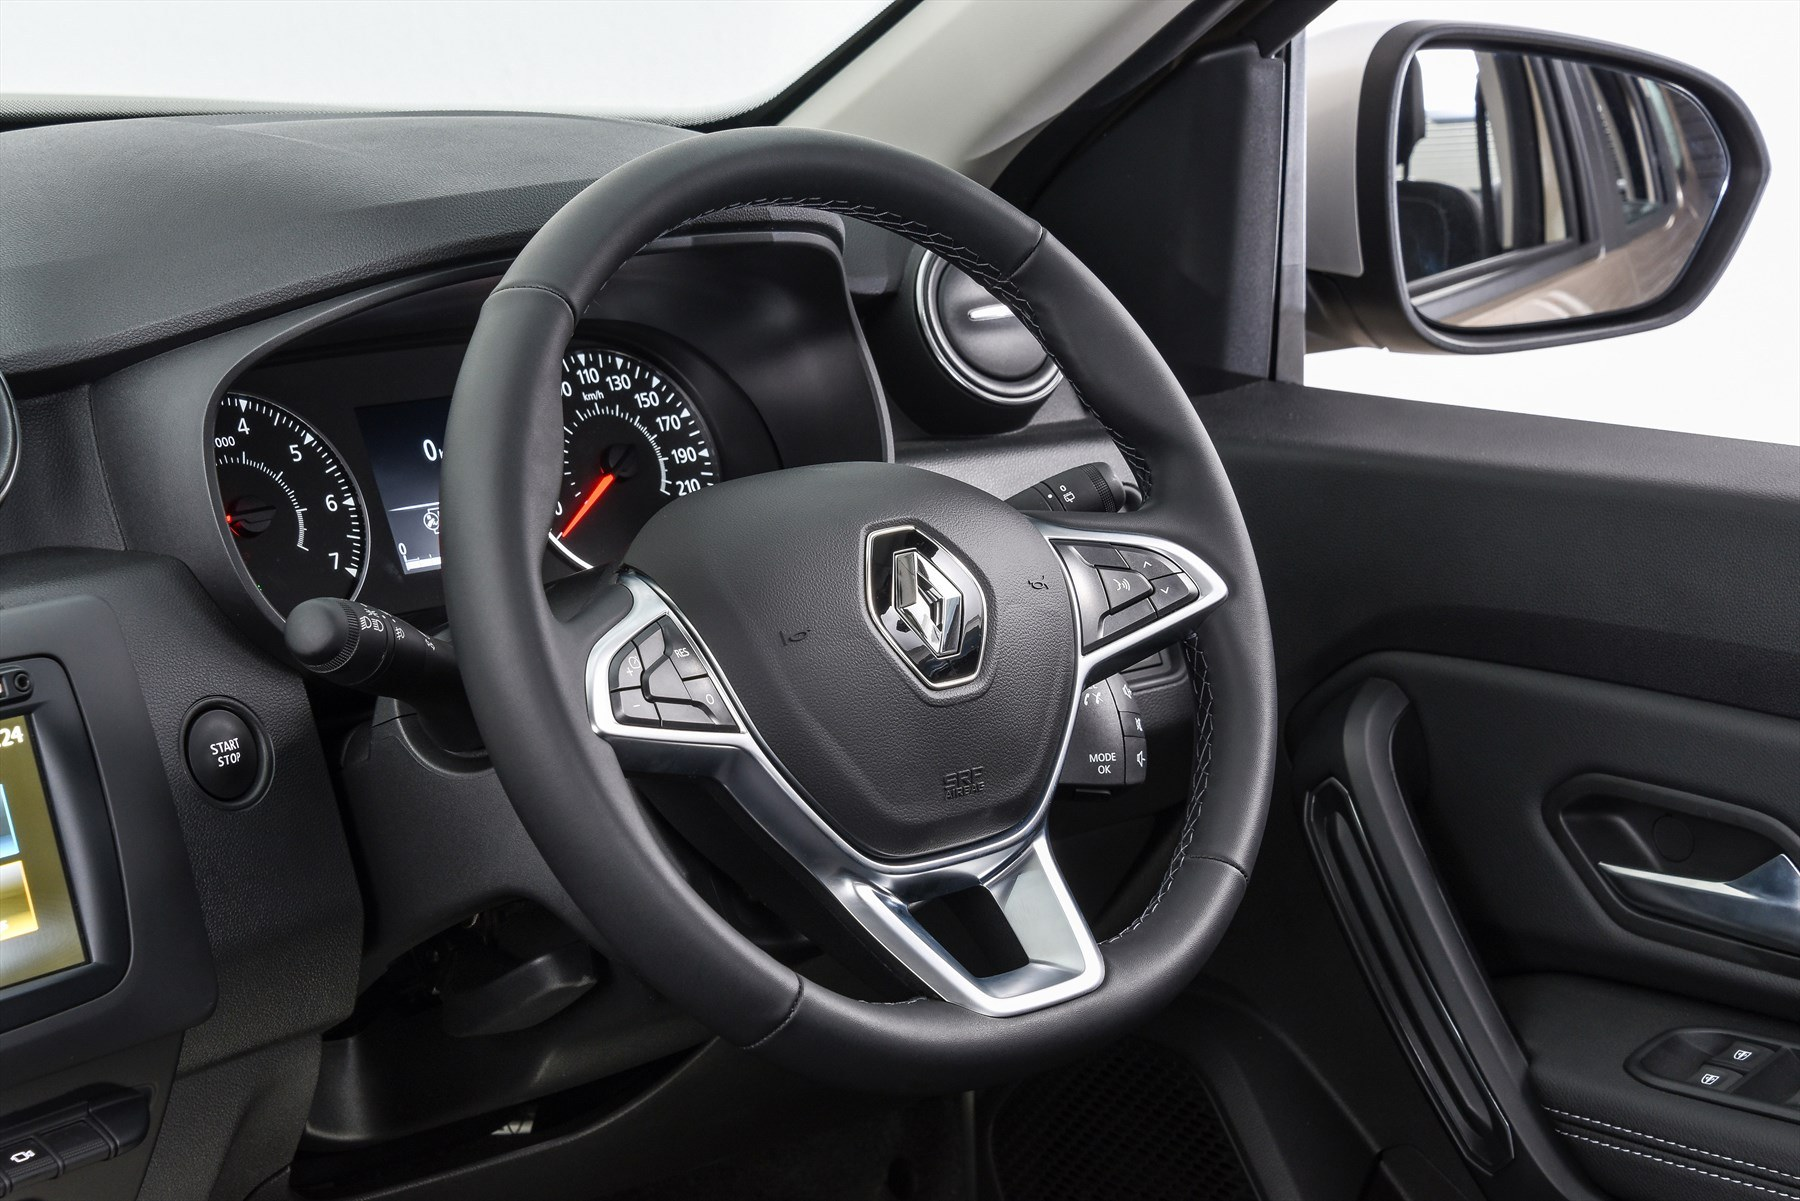 Renault duster dynamique 4x4 interior steering 1800x1800